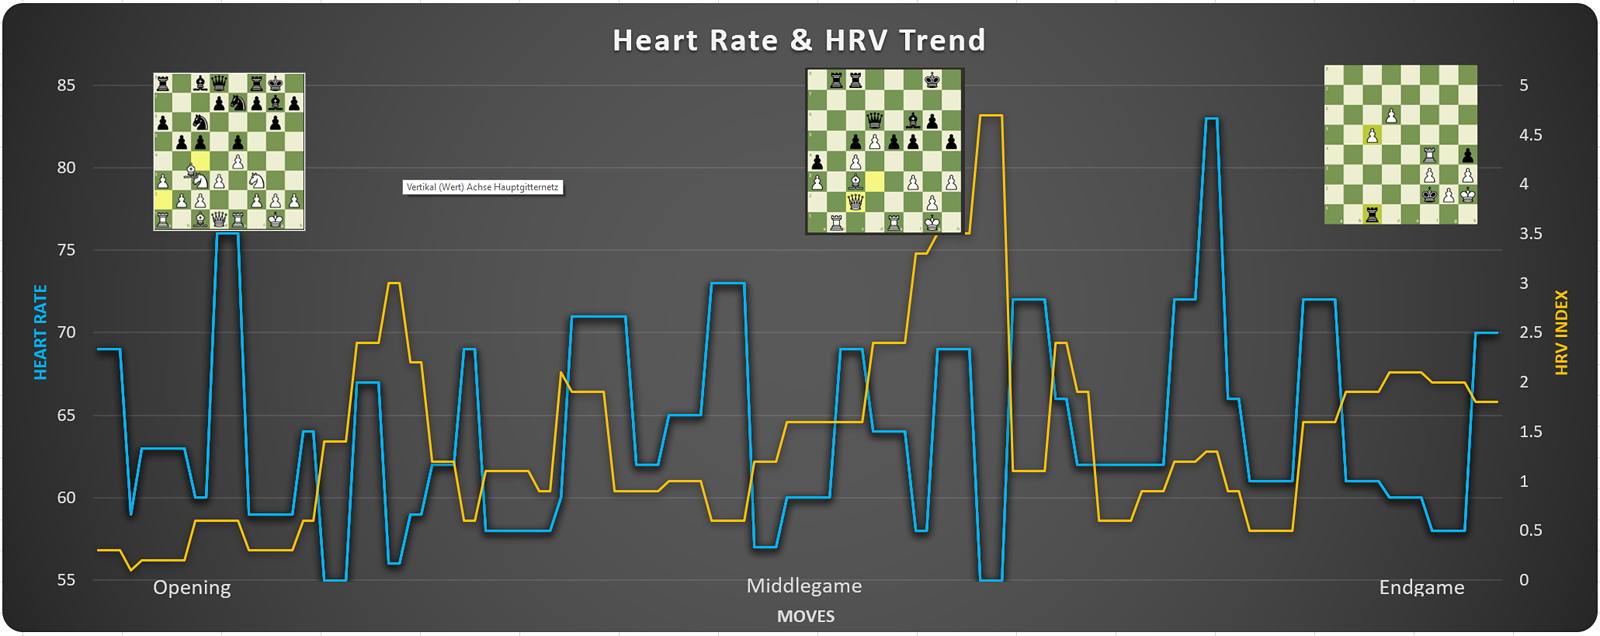 Heart rate and HRV trend